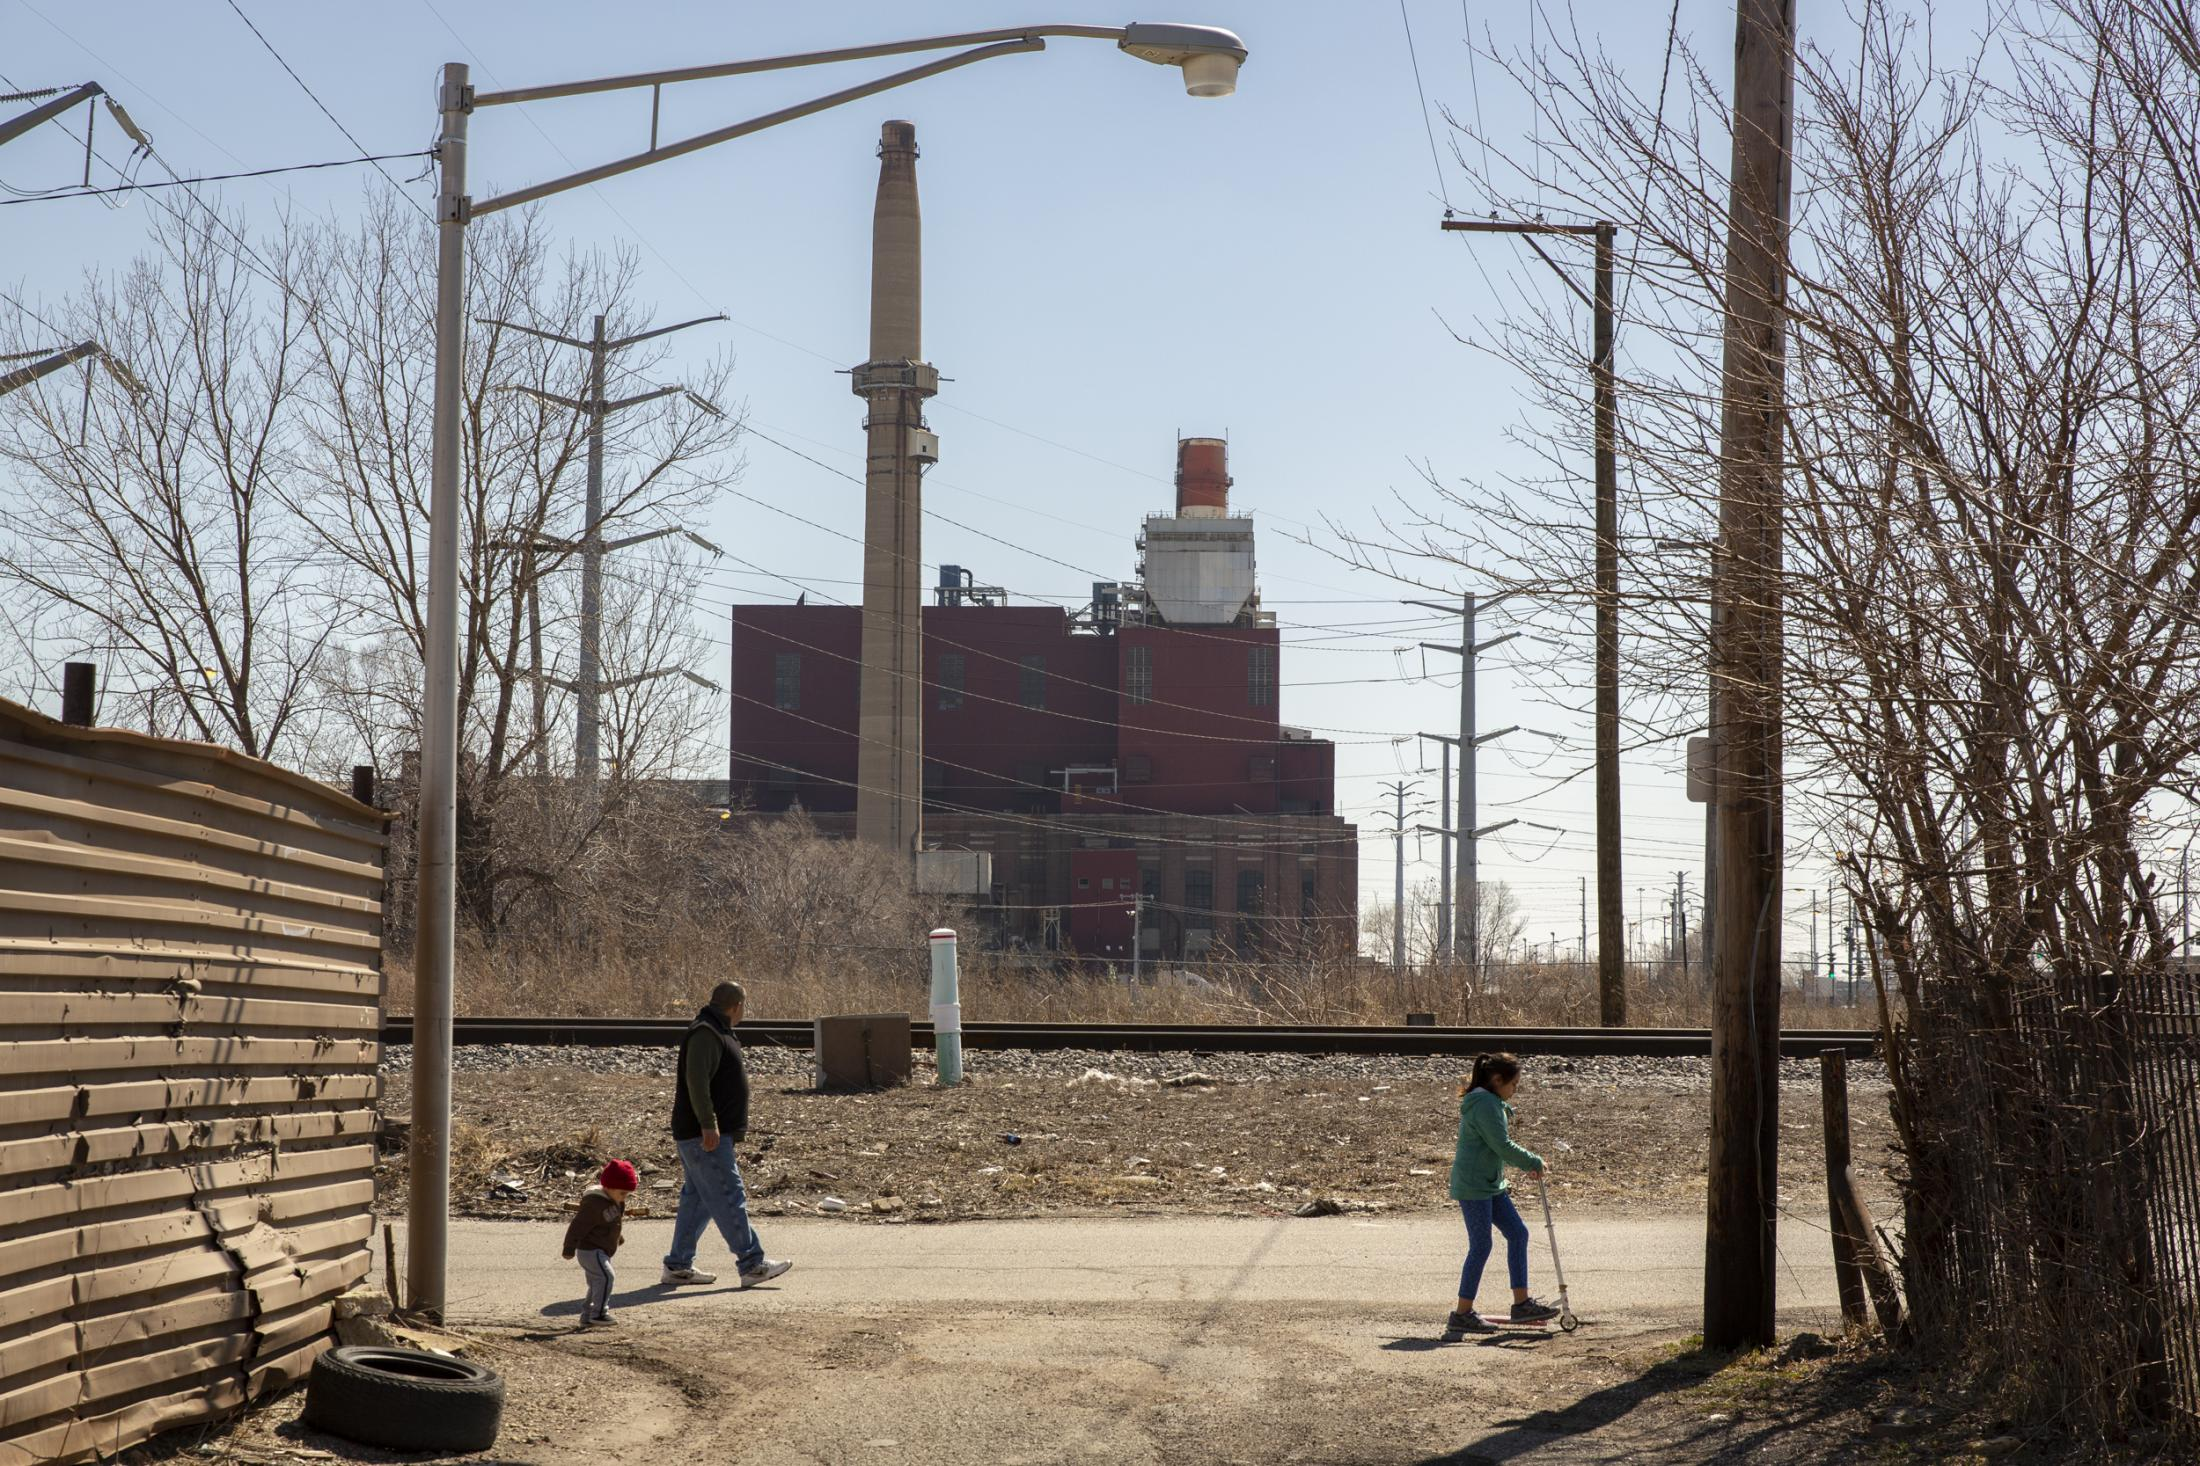 A family walks next to a railroad near Crawford Generating Station in Little Village neighborhood of Chicago. The coal power plant operated for almost 90 years, causing asthma and other respiratory issues to residents before it was forced to close in 2012 due to pressure from activists. In 2019, Hilco Redevelopment Partners gained city approval to build a 1 million-square-foot distribution center, creating concern in the community that the incoming concentration of diesel trucks will replace the former coal polluter with another harmful polluter.